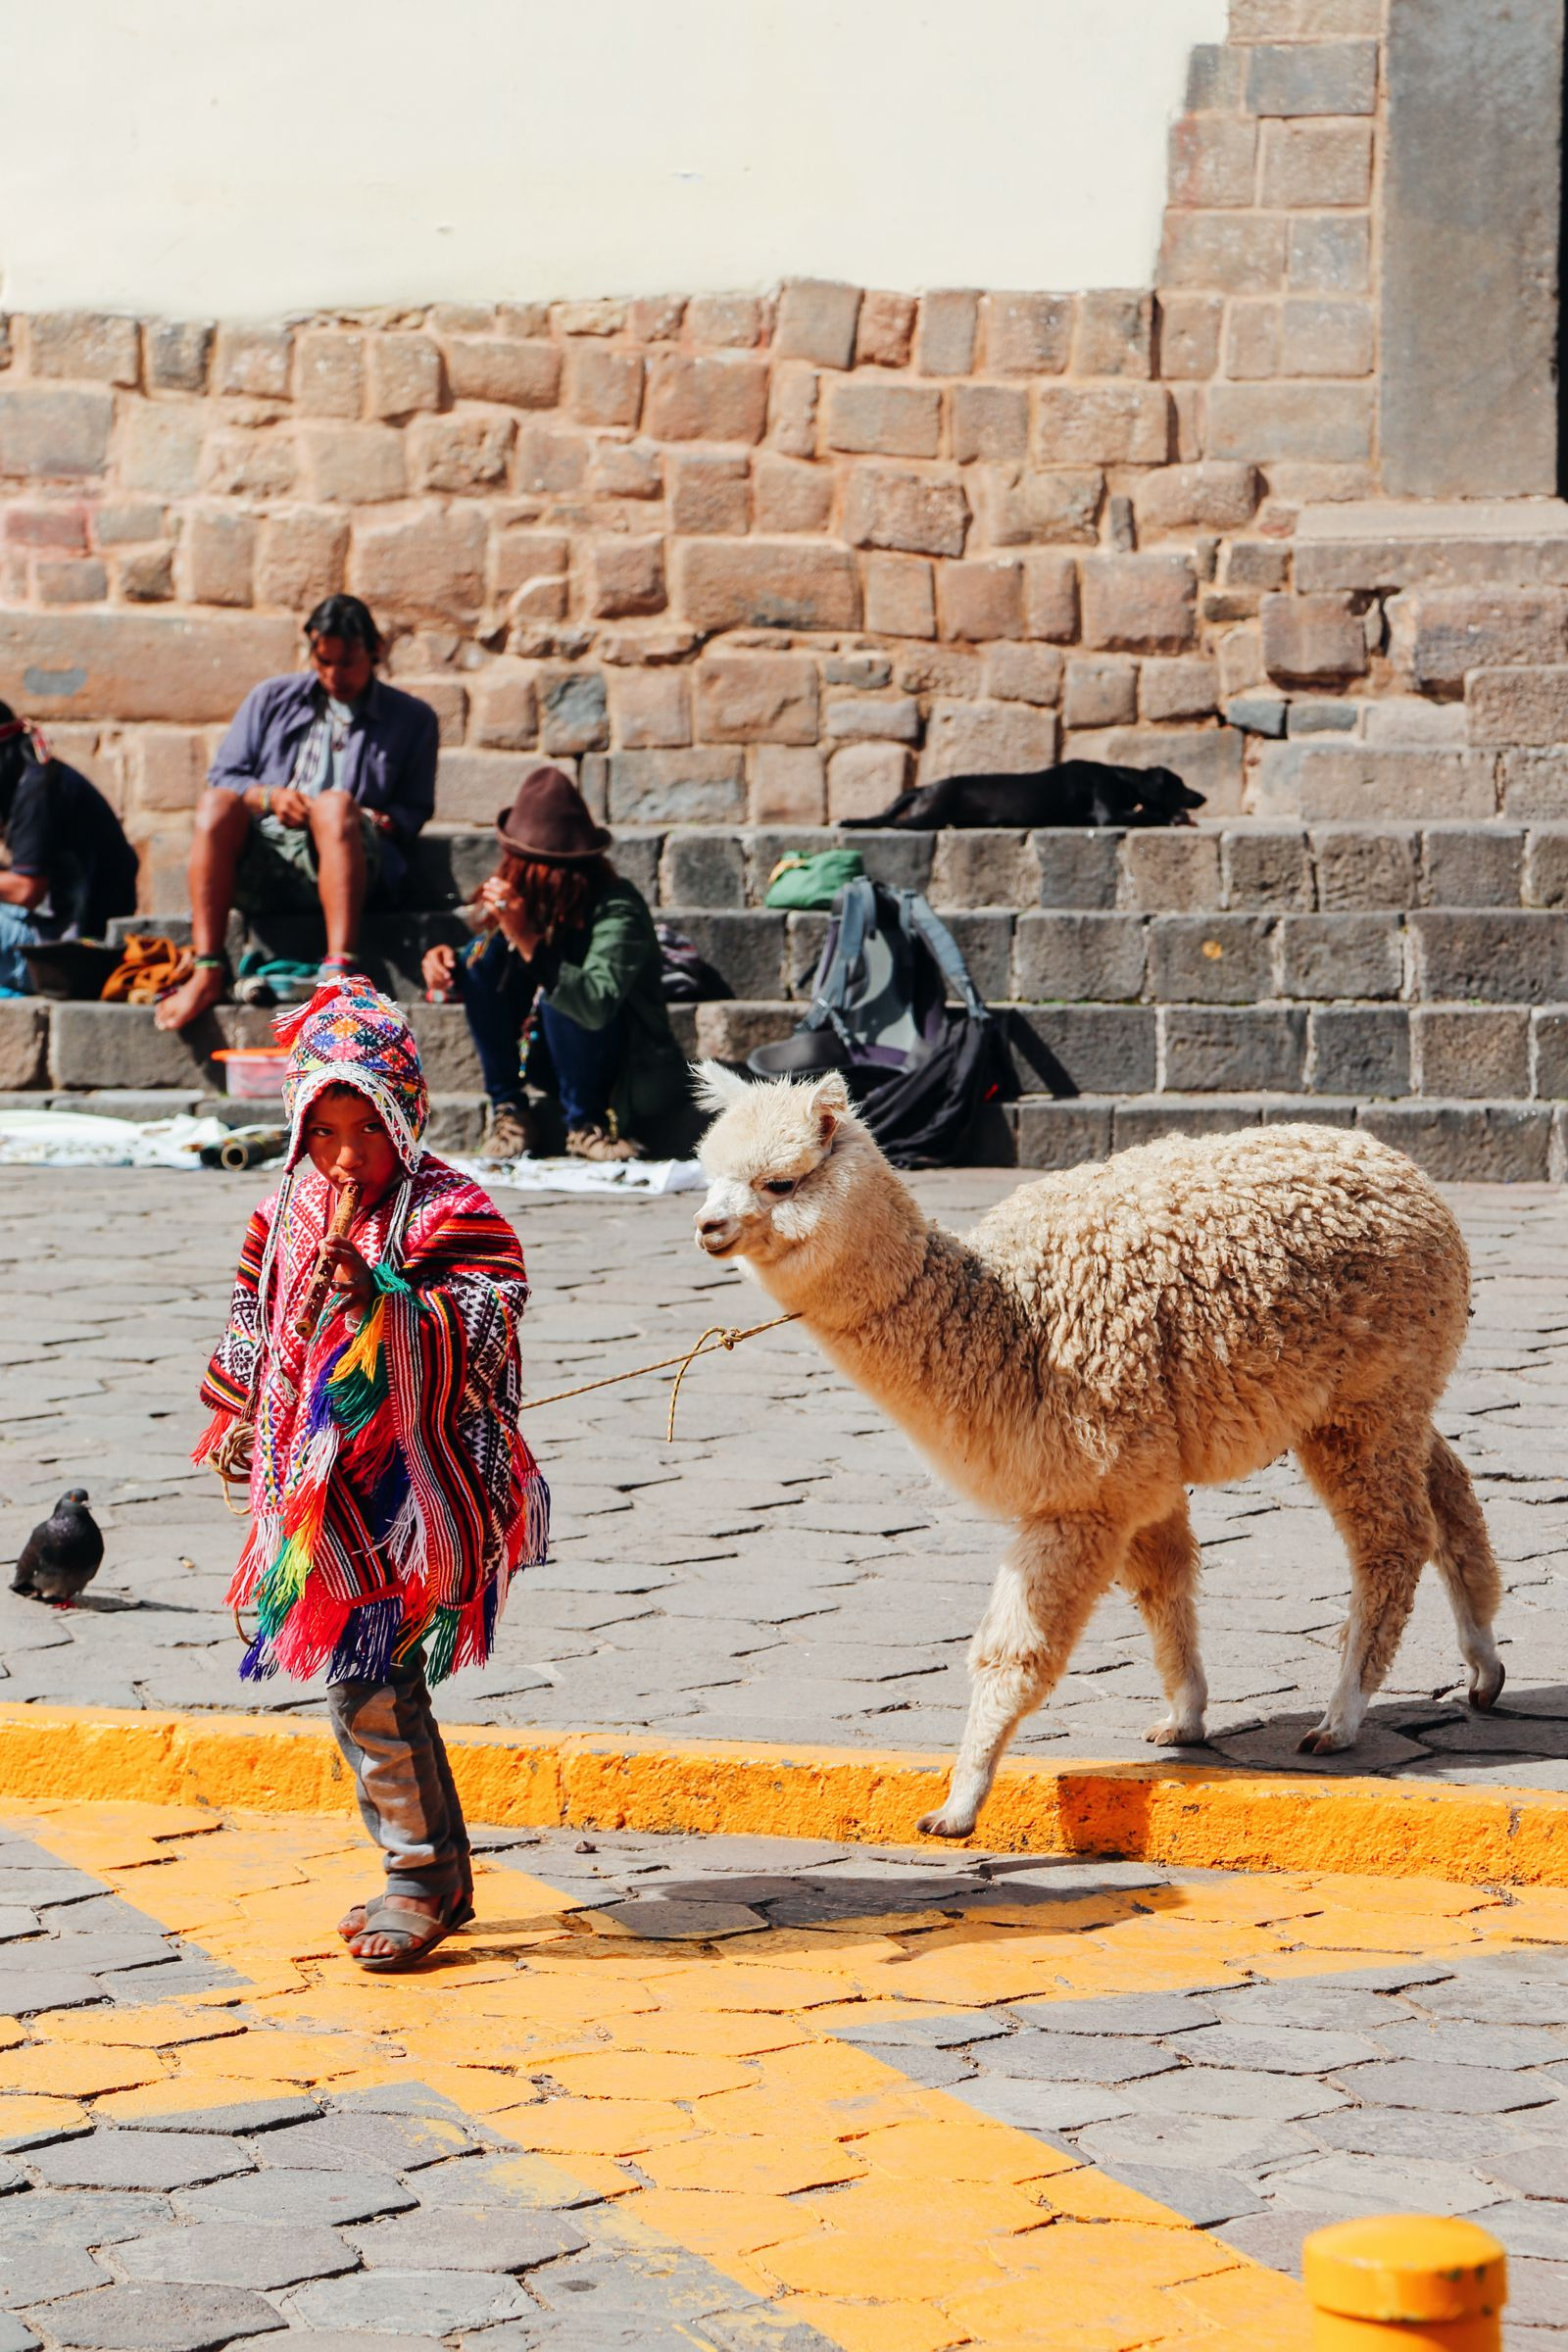 Postcards from Peru - Cusco and Machu Picchu (5)